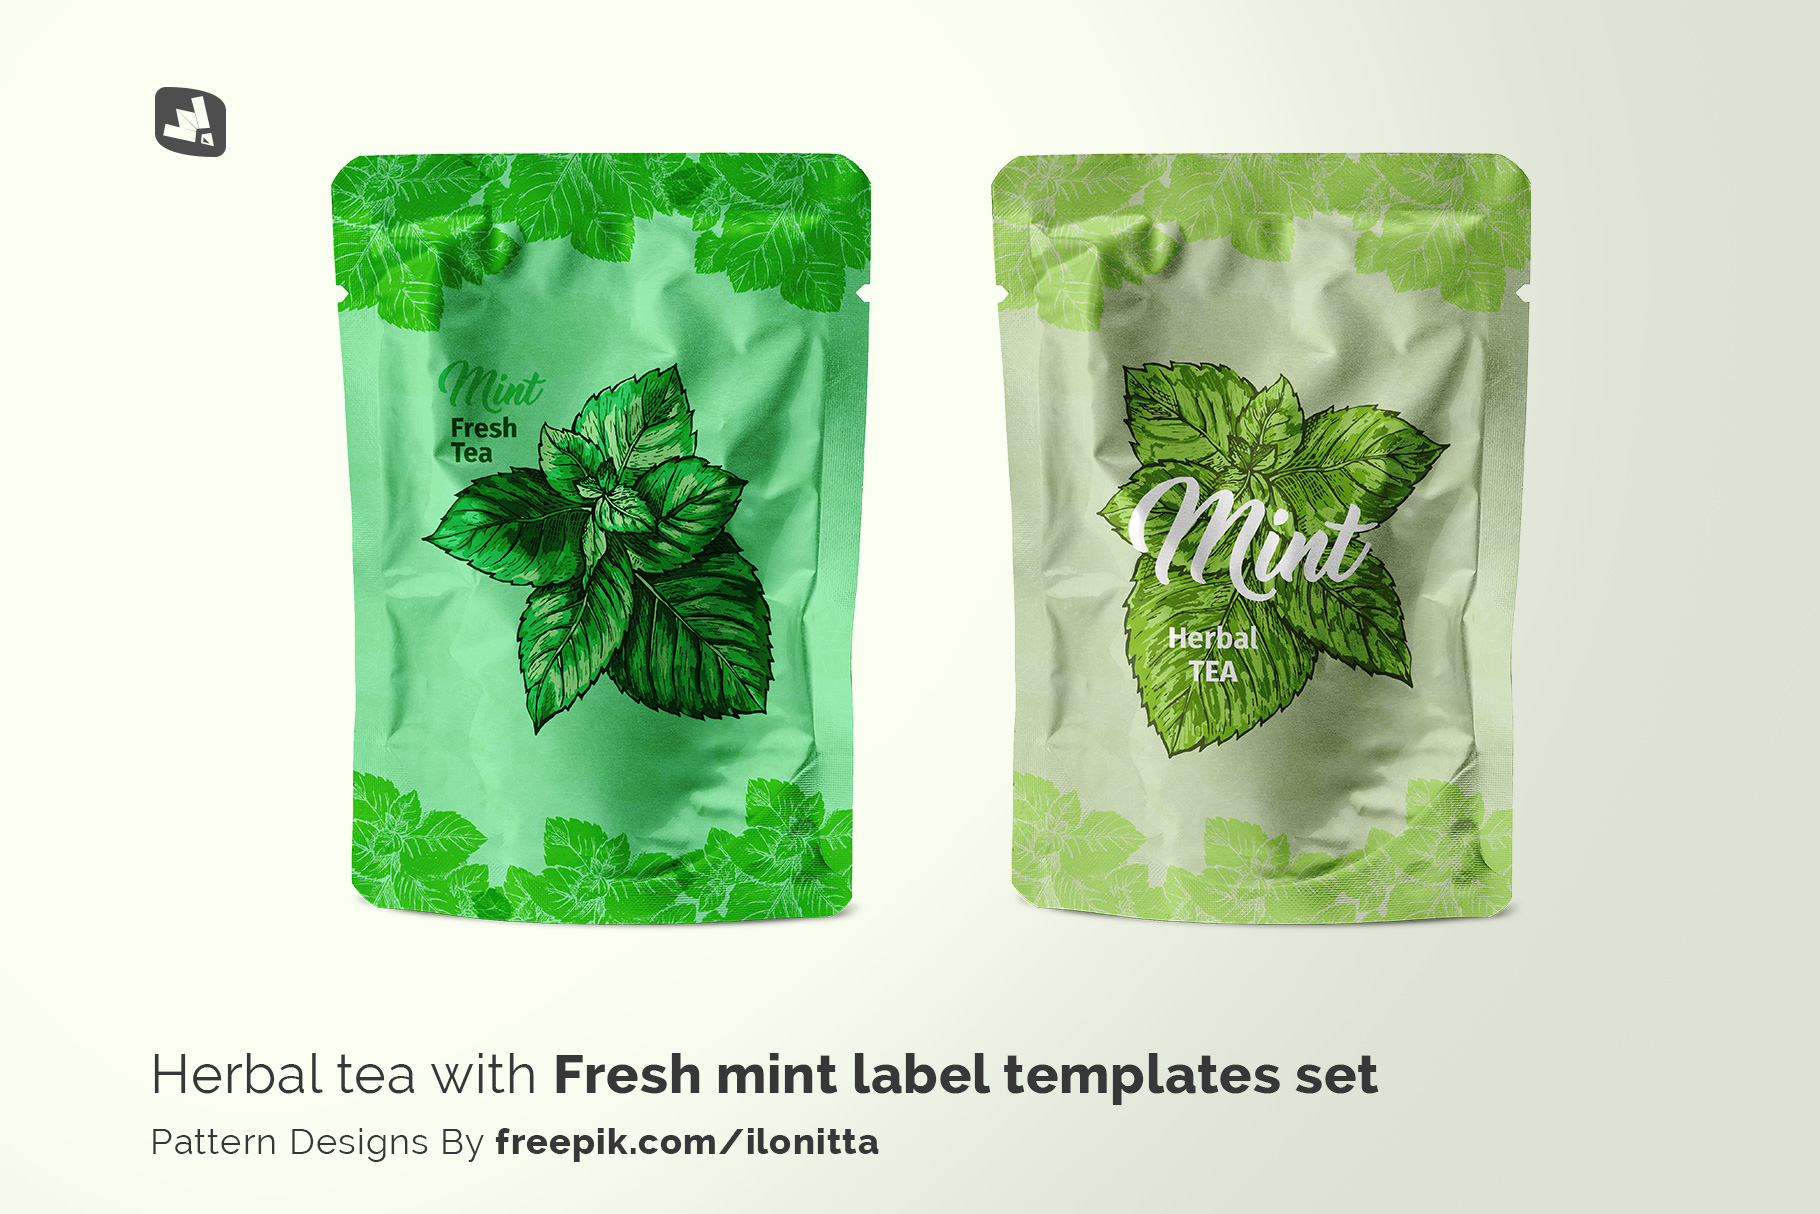 designer's credit of the flexible foil pouch packaging mockup